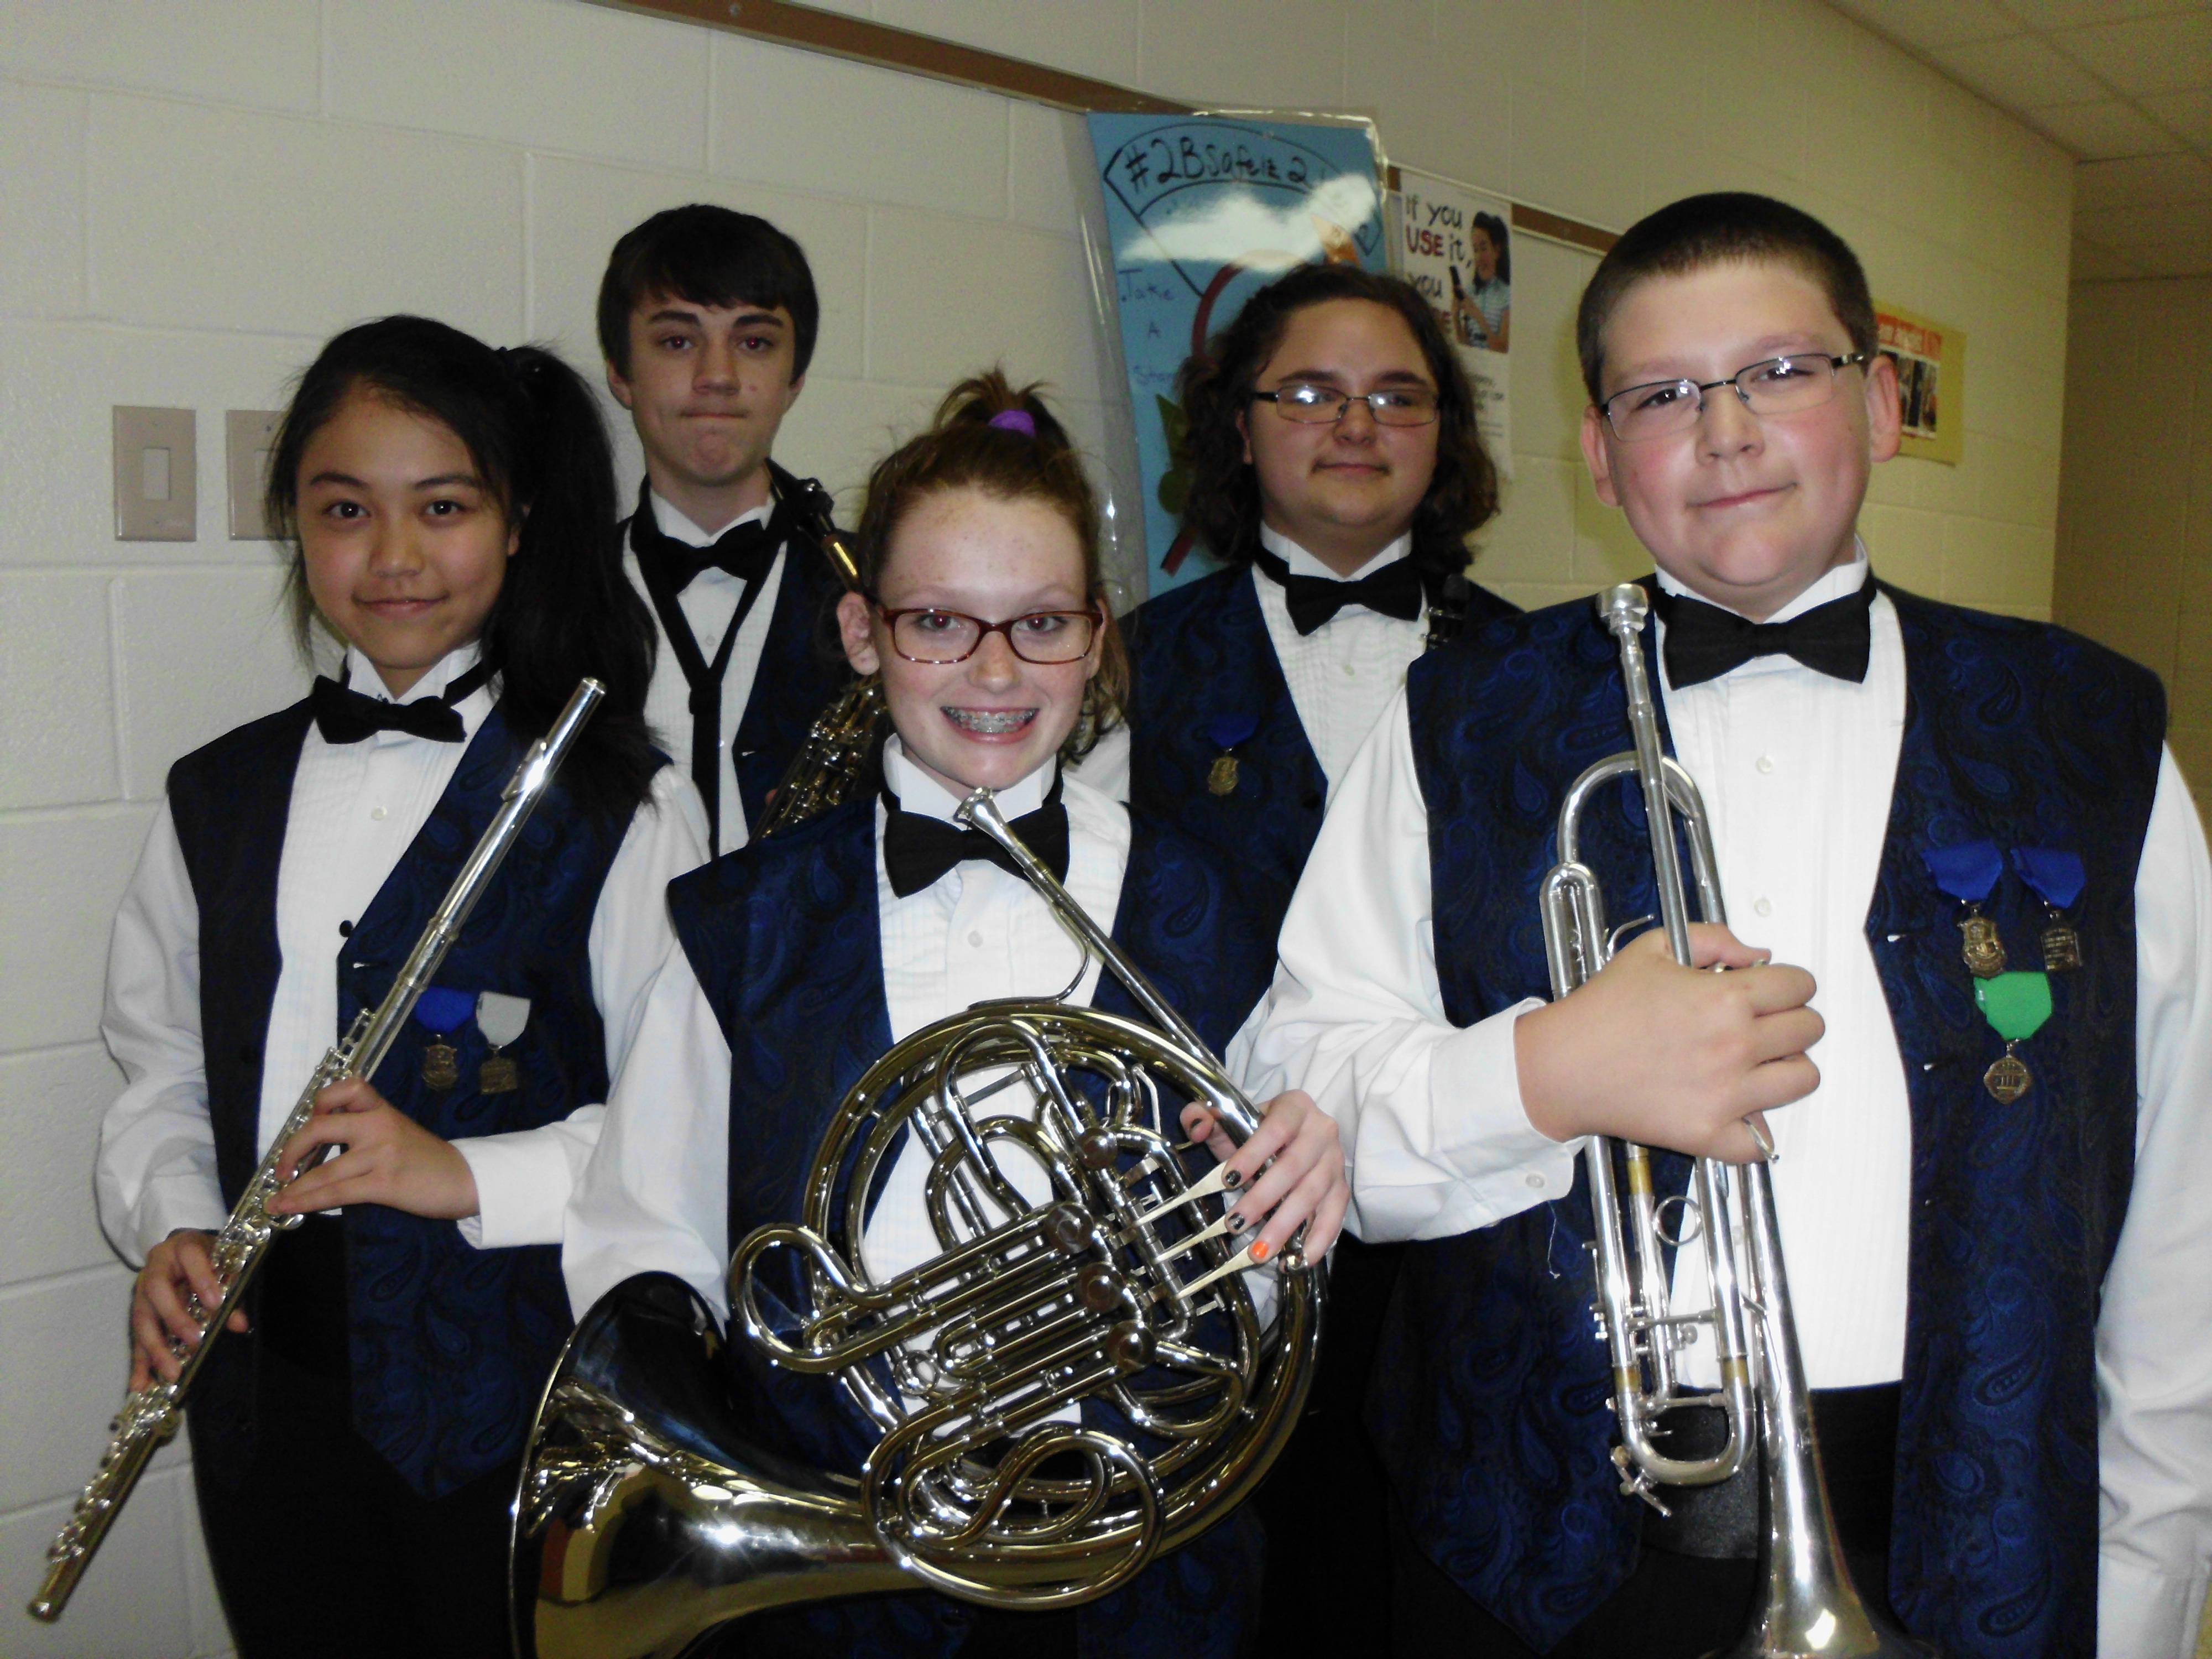 The following students were named to the HRYWE, in the front row; Maiko Okawa (flute), Sarah Kennedy (fench horn), Miguel Garza (trumpet); in the back row, Camerone Treon (alto saxophone), and Alexys Wilber (clarinet).